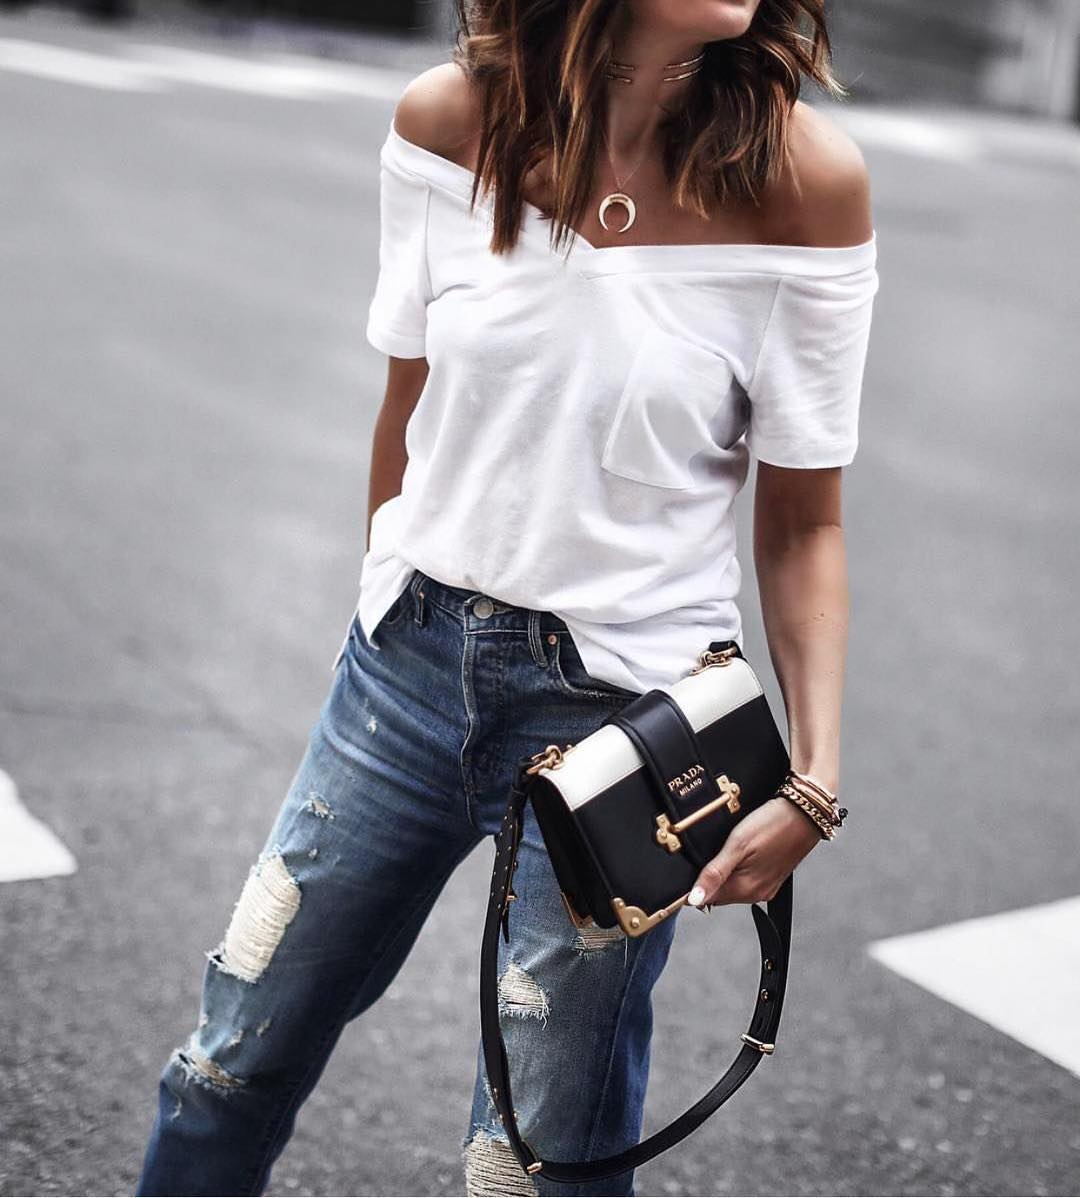 Off Shoulder White Top And Ripped Jeans For Casual Summer 2020